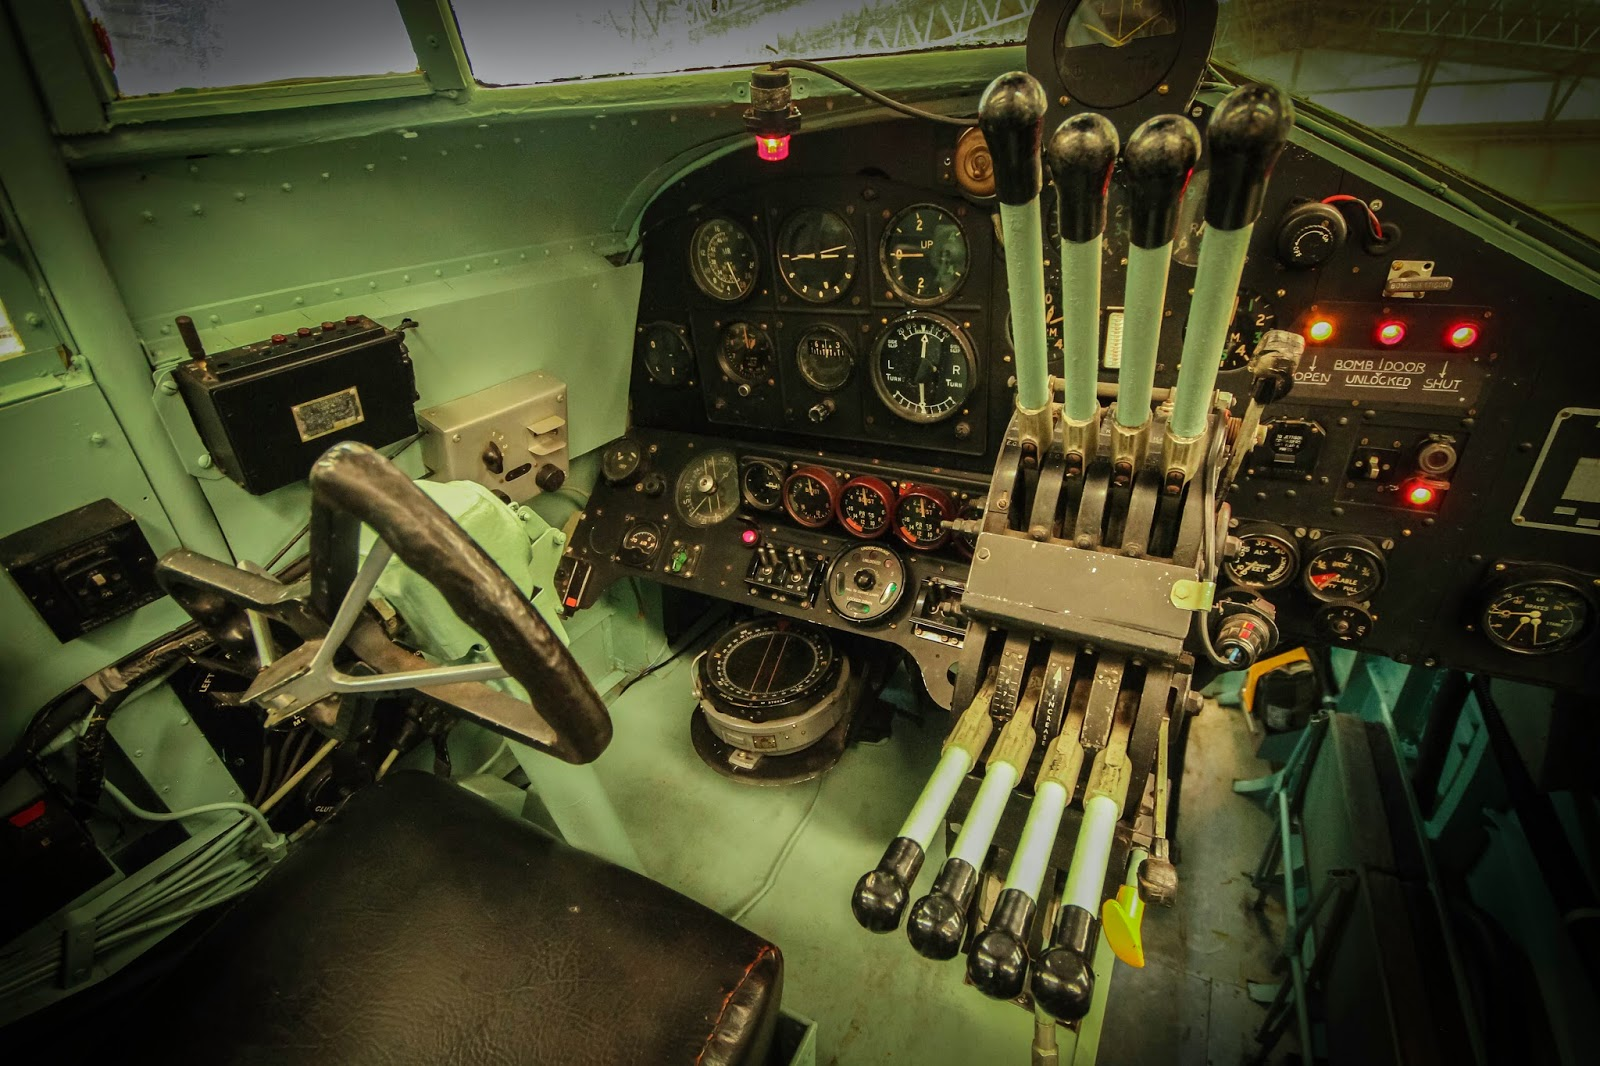 Military aircraft crash sites halifax at yorkshire air museum for Pictures inside